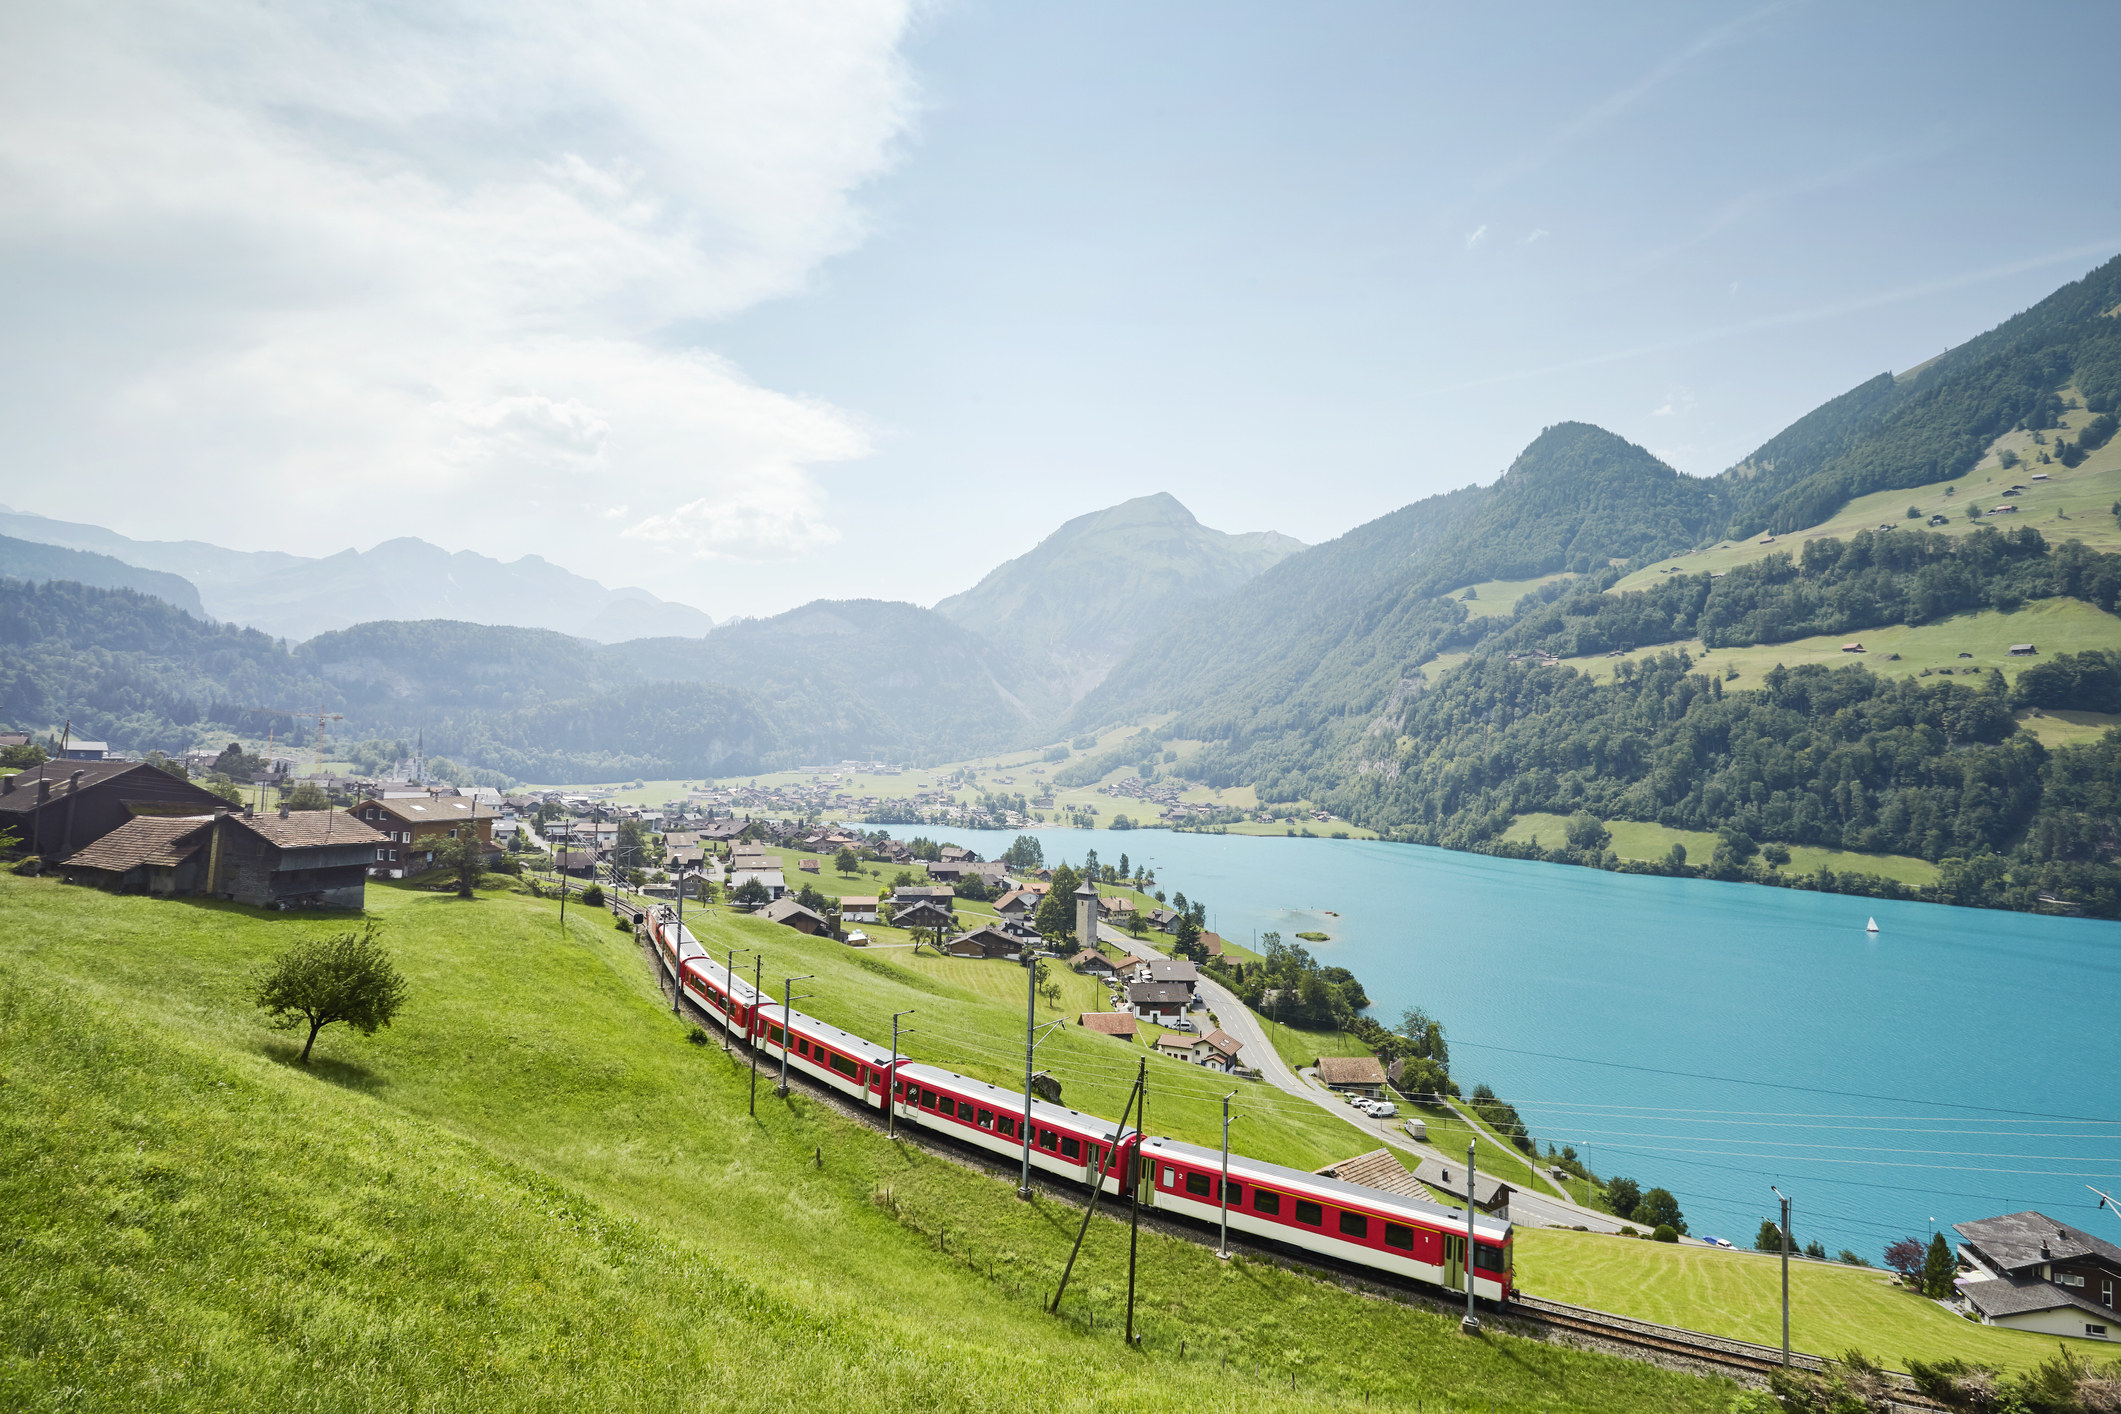 A train passing Lake Lucerne.